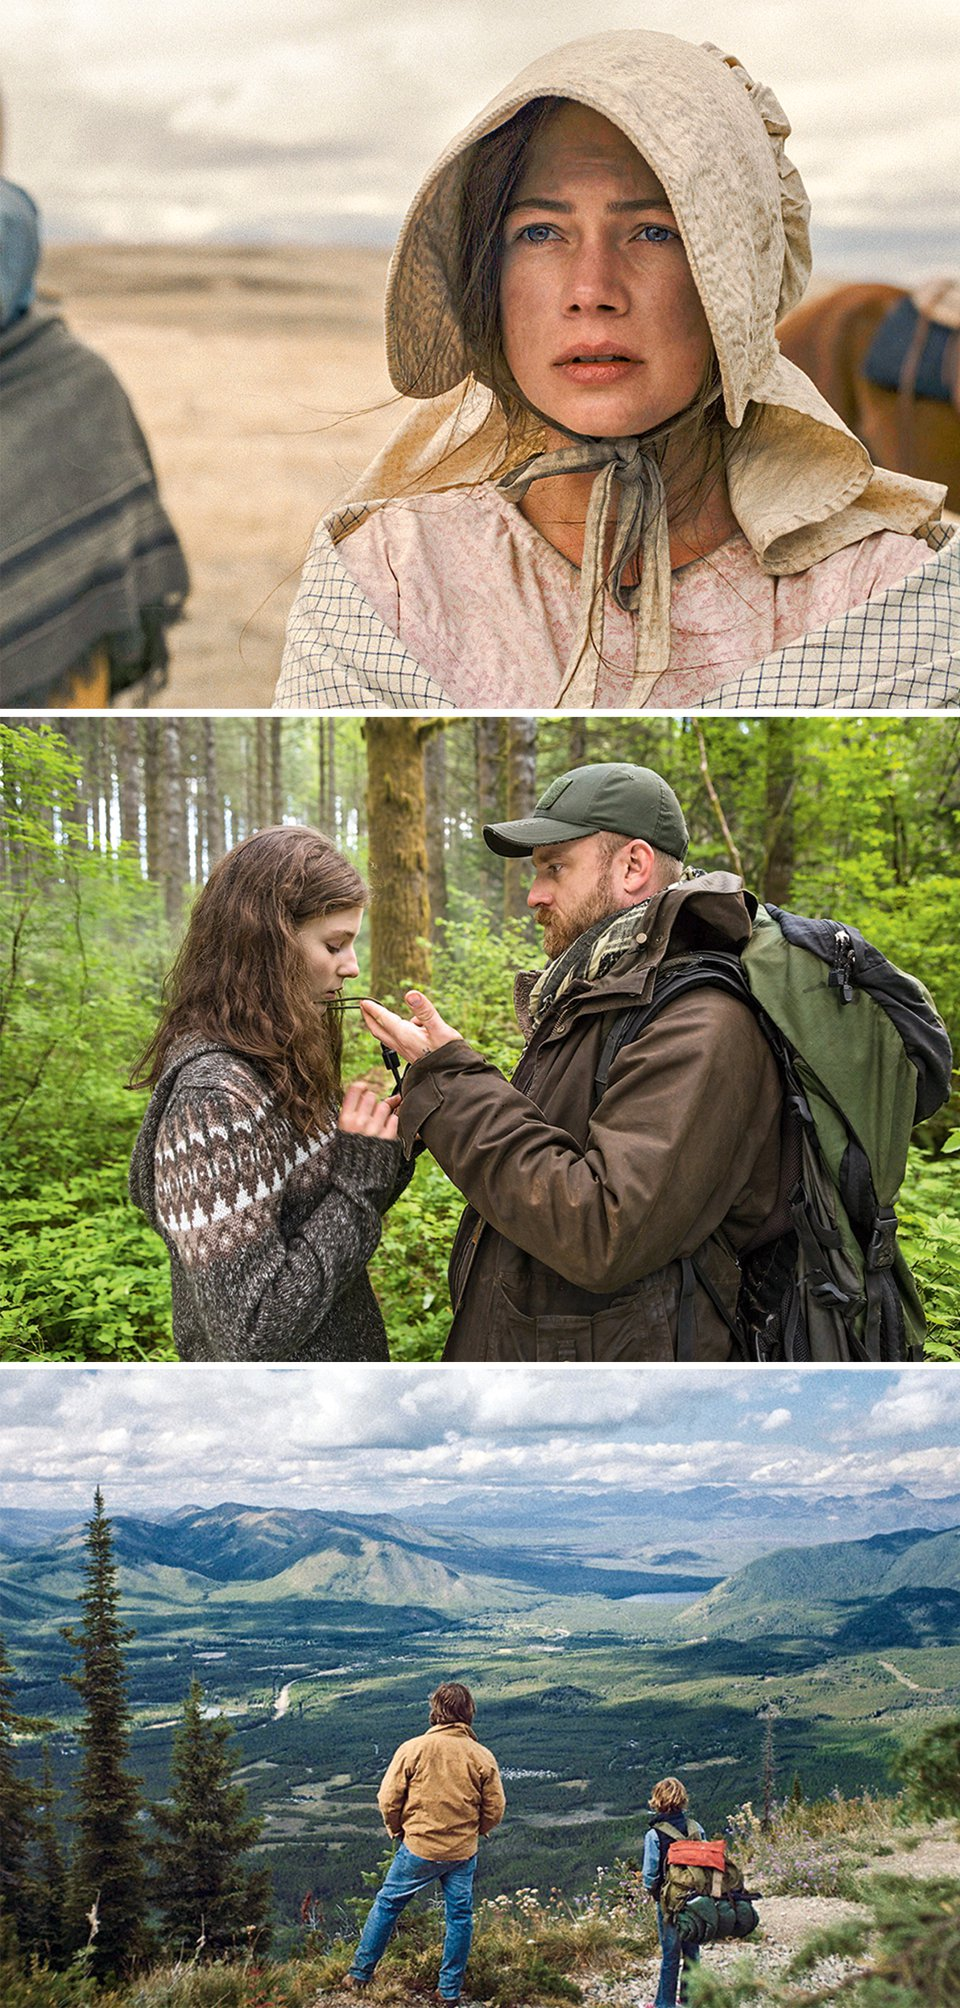 3 movie stills: a woman in a bonnet, a man and a woman conversing in the middle of a forest, and a man and boy looking out over a mountainous landscape